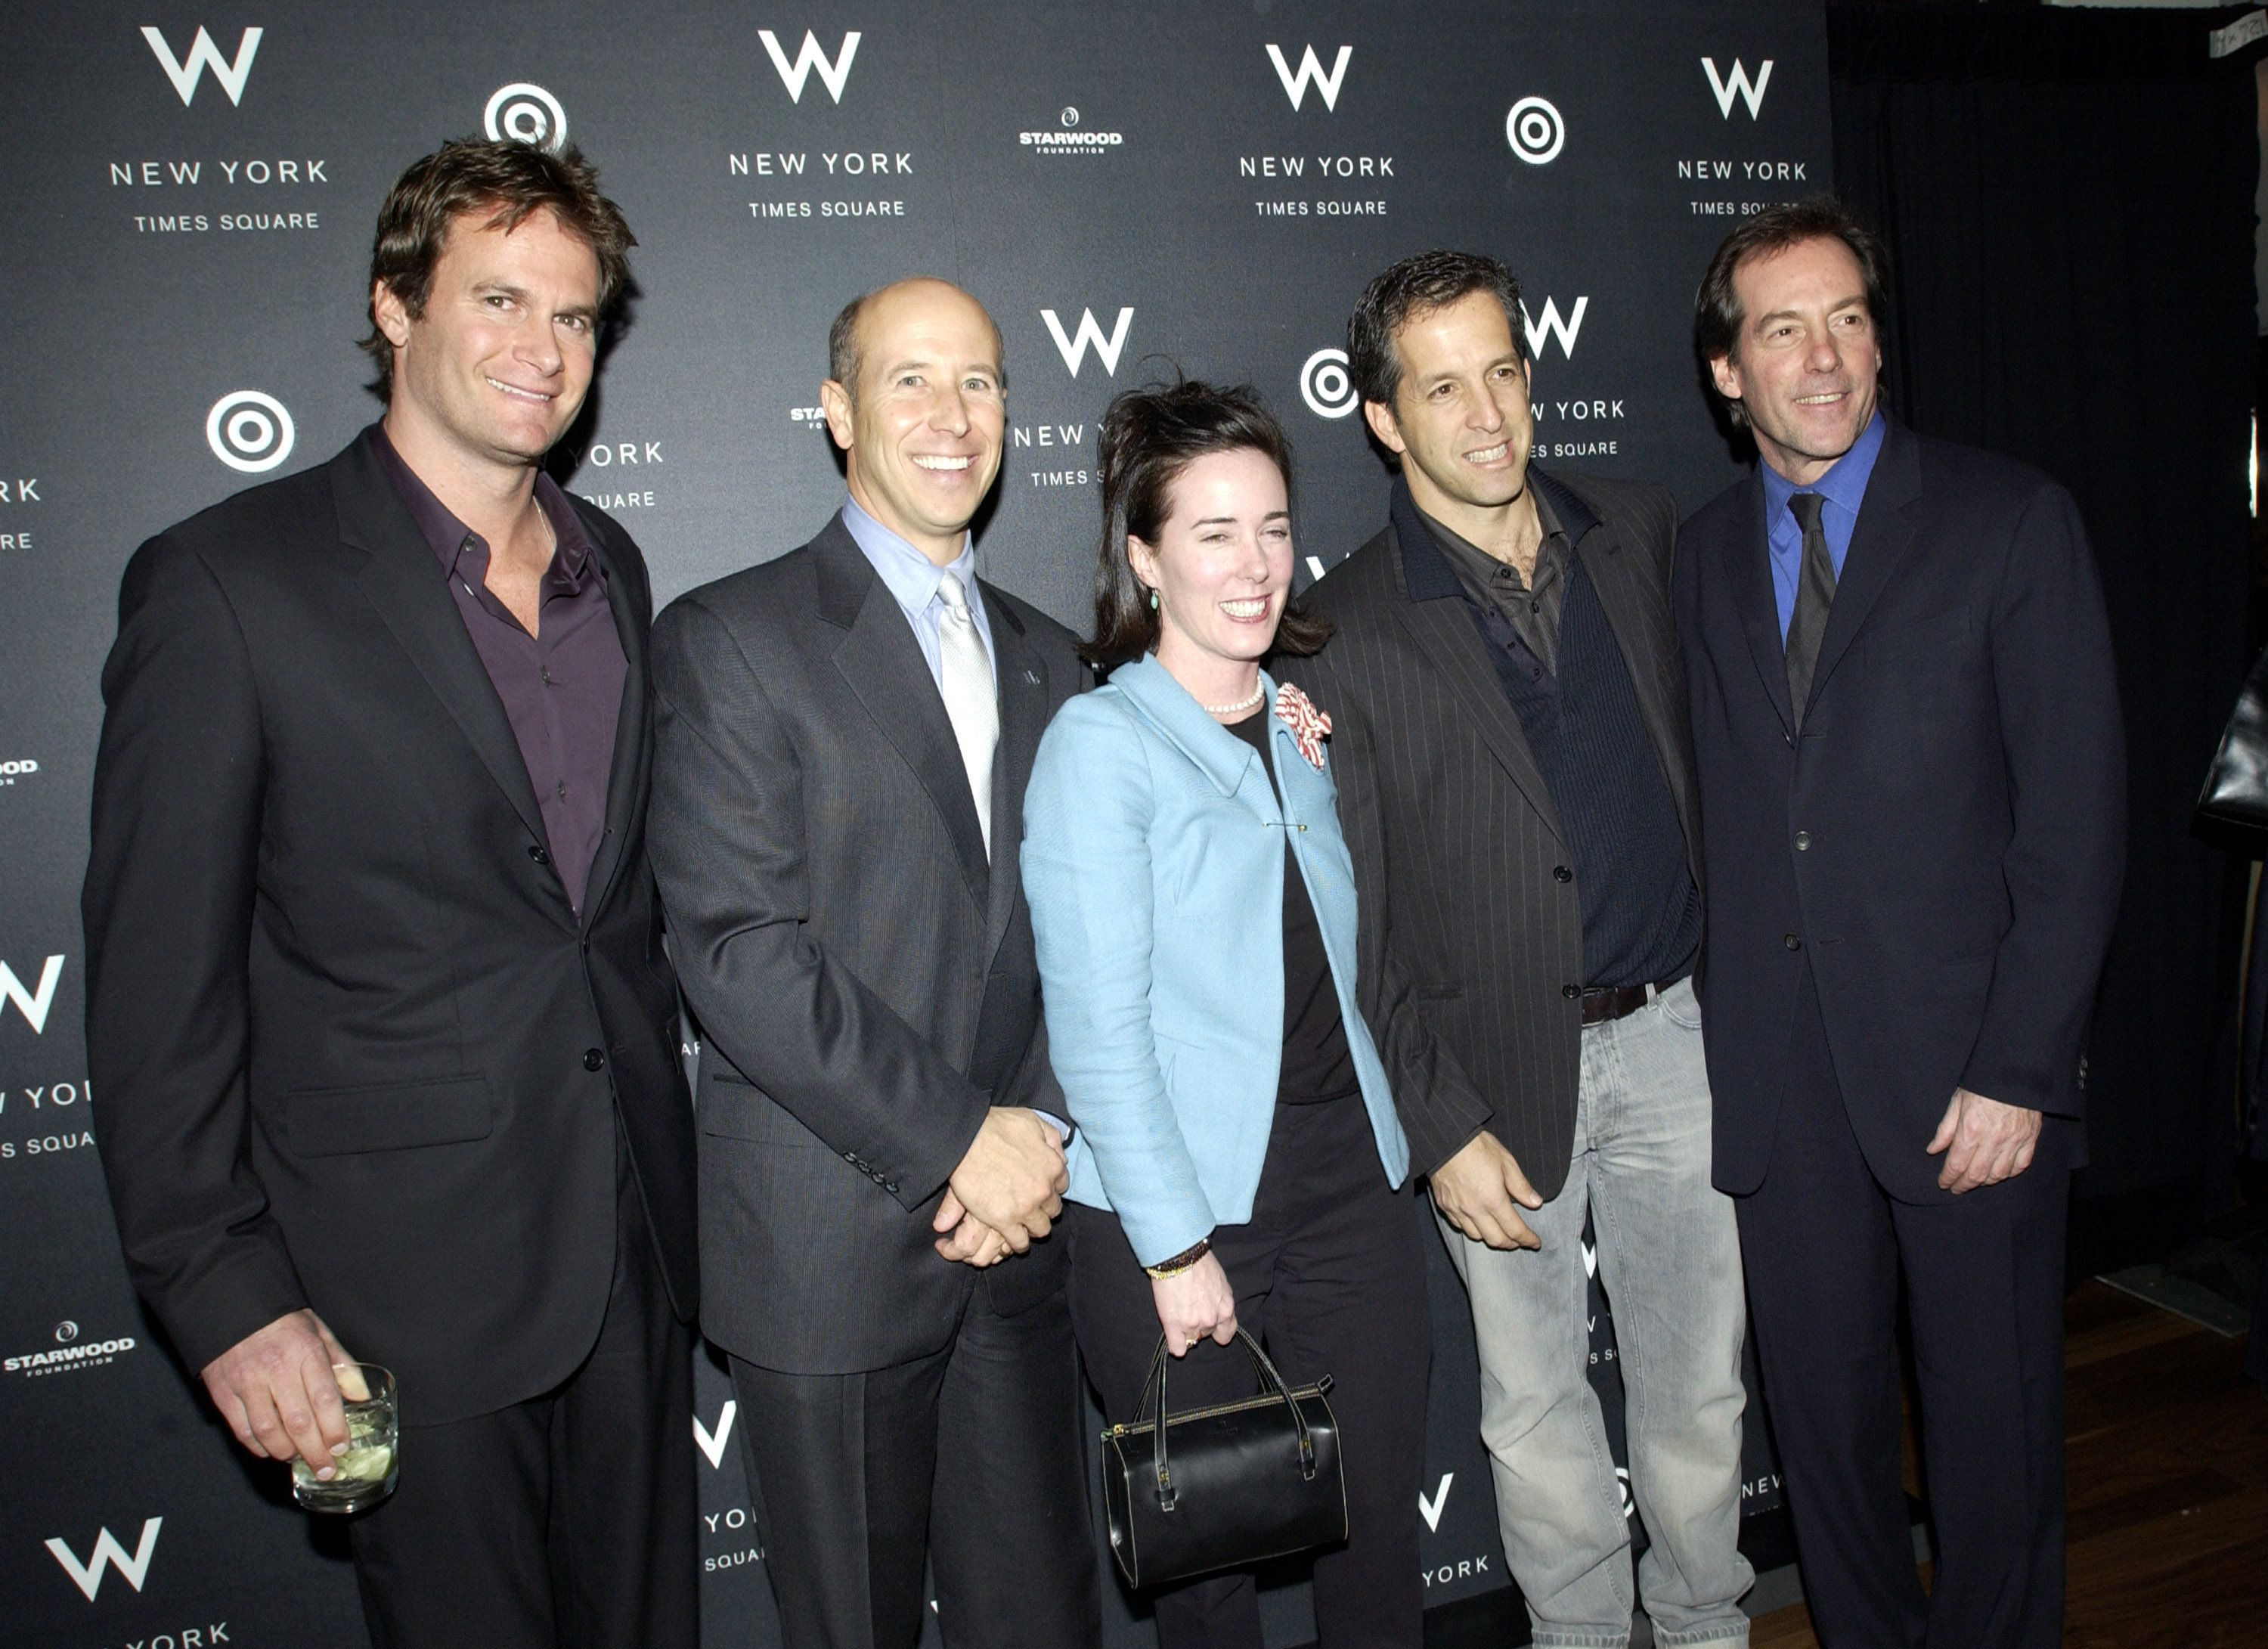 Rande Gerber, Barry S. Sternlicht, CEO and Chairman of W Hotels and The Starwood Foundation, Kate Spade, and Kenneth Cole (Photo by KMazur/WireImage)